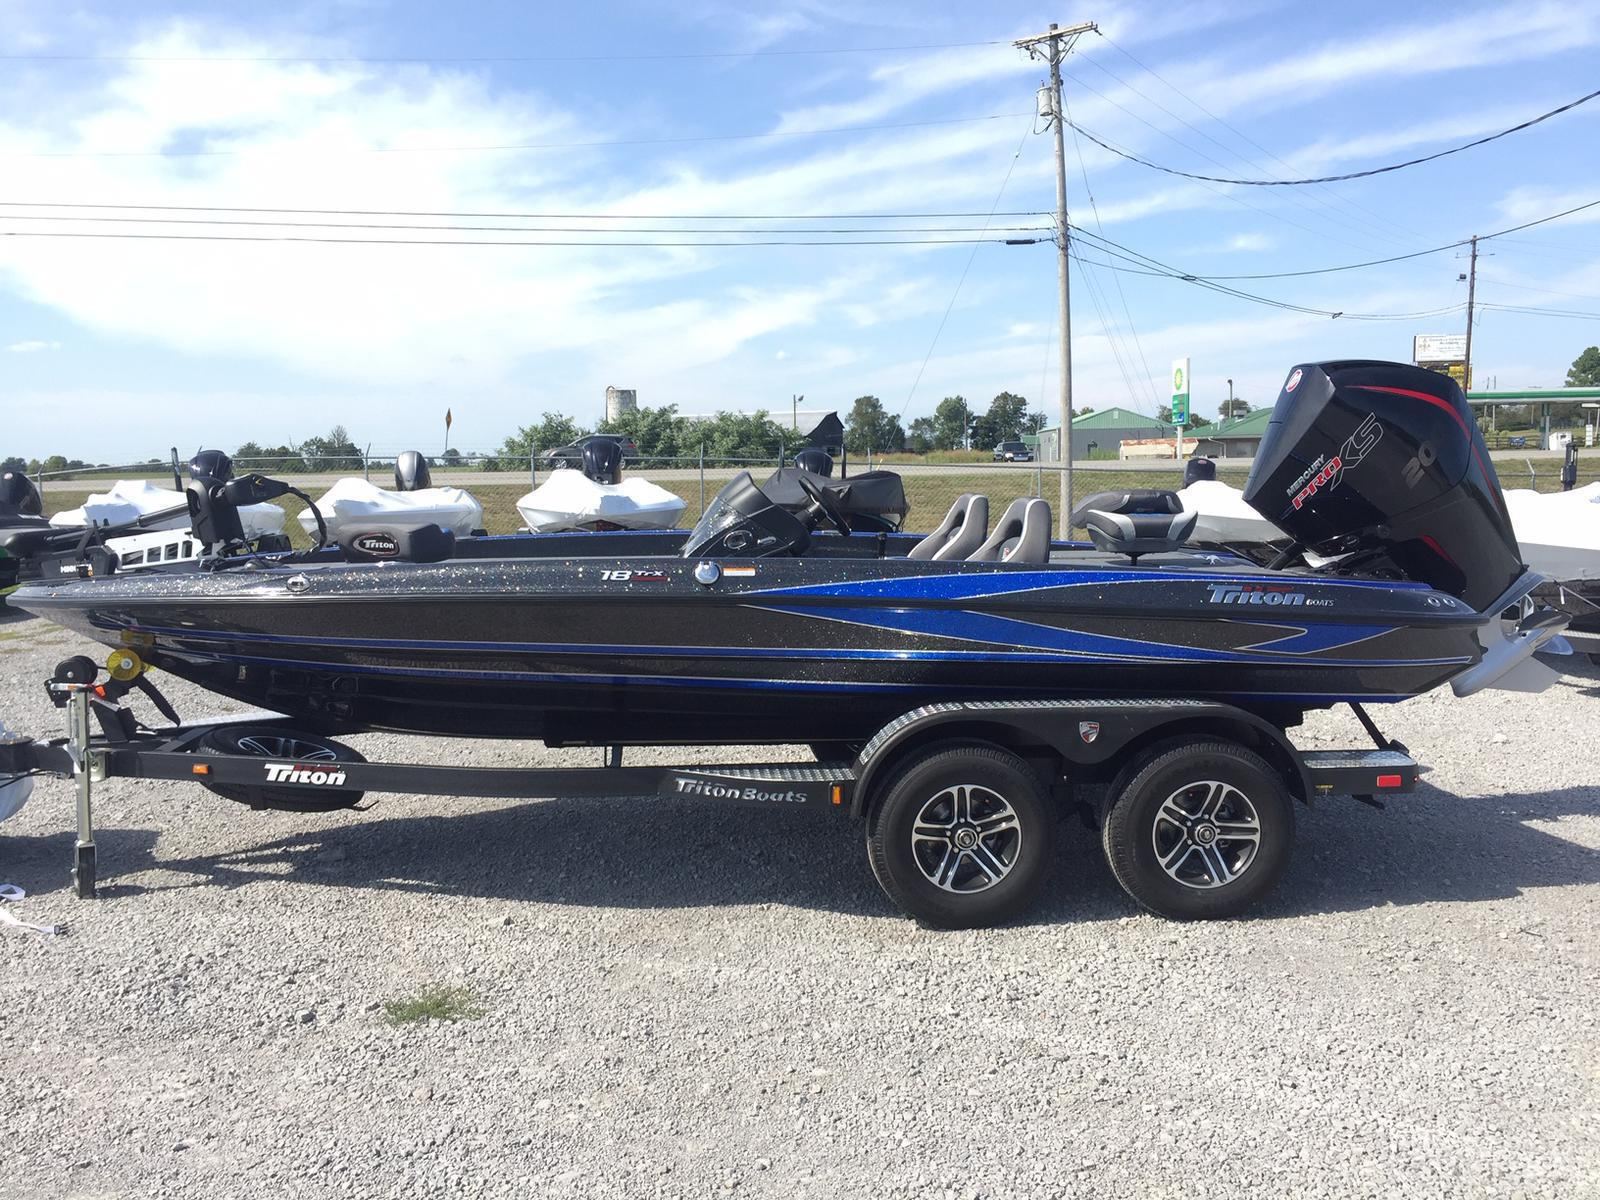 Inventory from Berkshire Pontoons and Triton Boats Lancaster